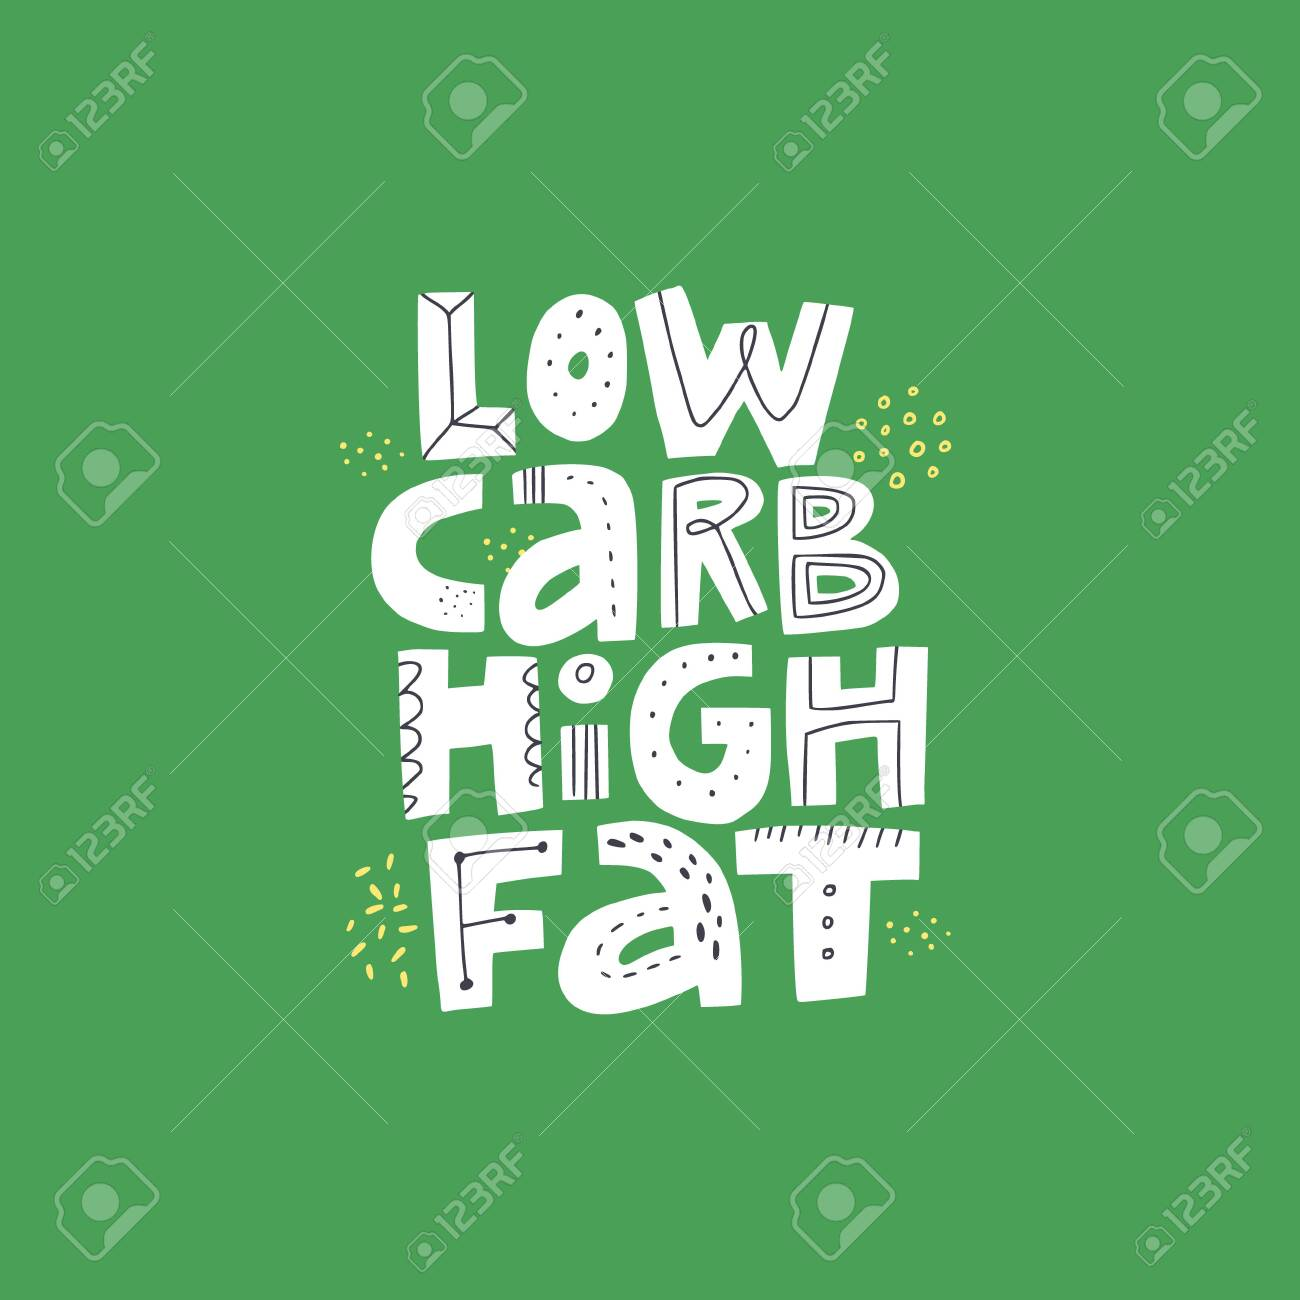 Low carb high fat white vector lettering. Keto diet flat hand drawn illustration. Ketogenic eating slogan, phrase on green background. Healthy nutrition scandinavian style poster, banner design - 124276254